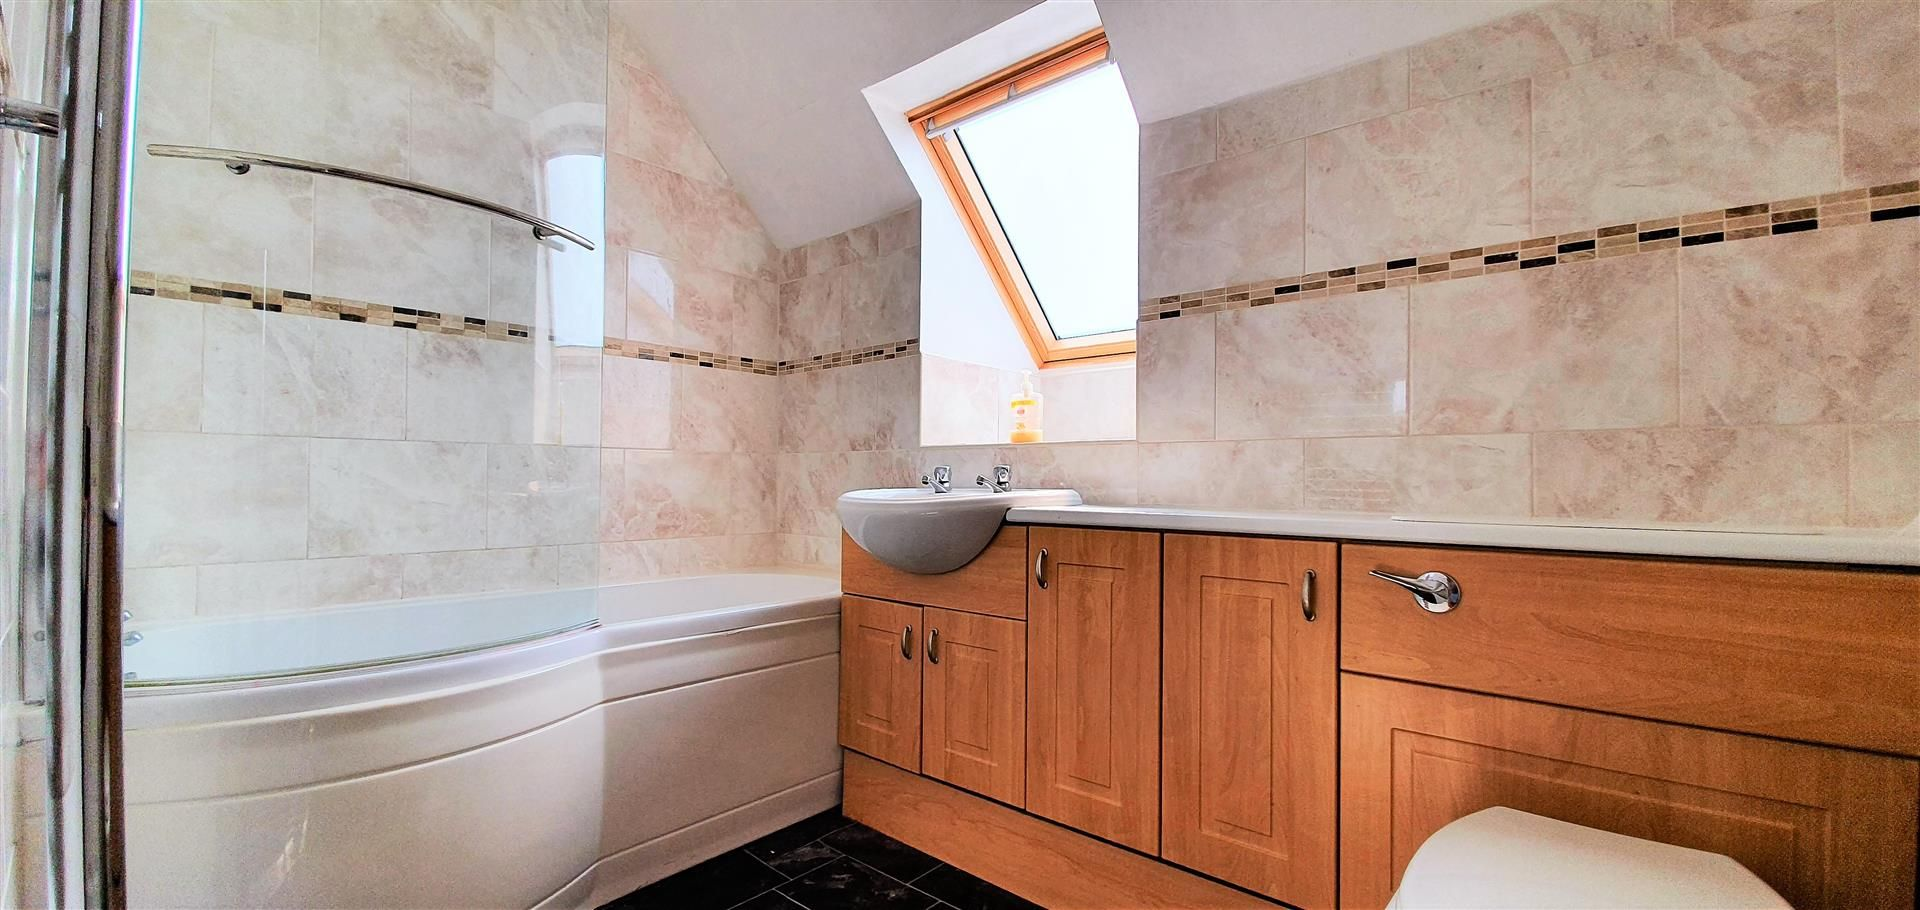 3 bed semi-detached to rent 8